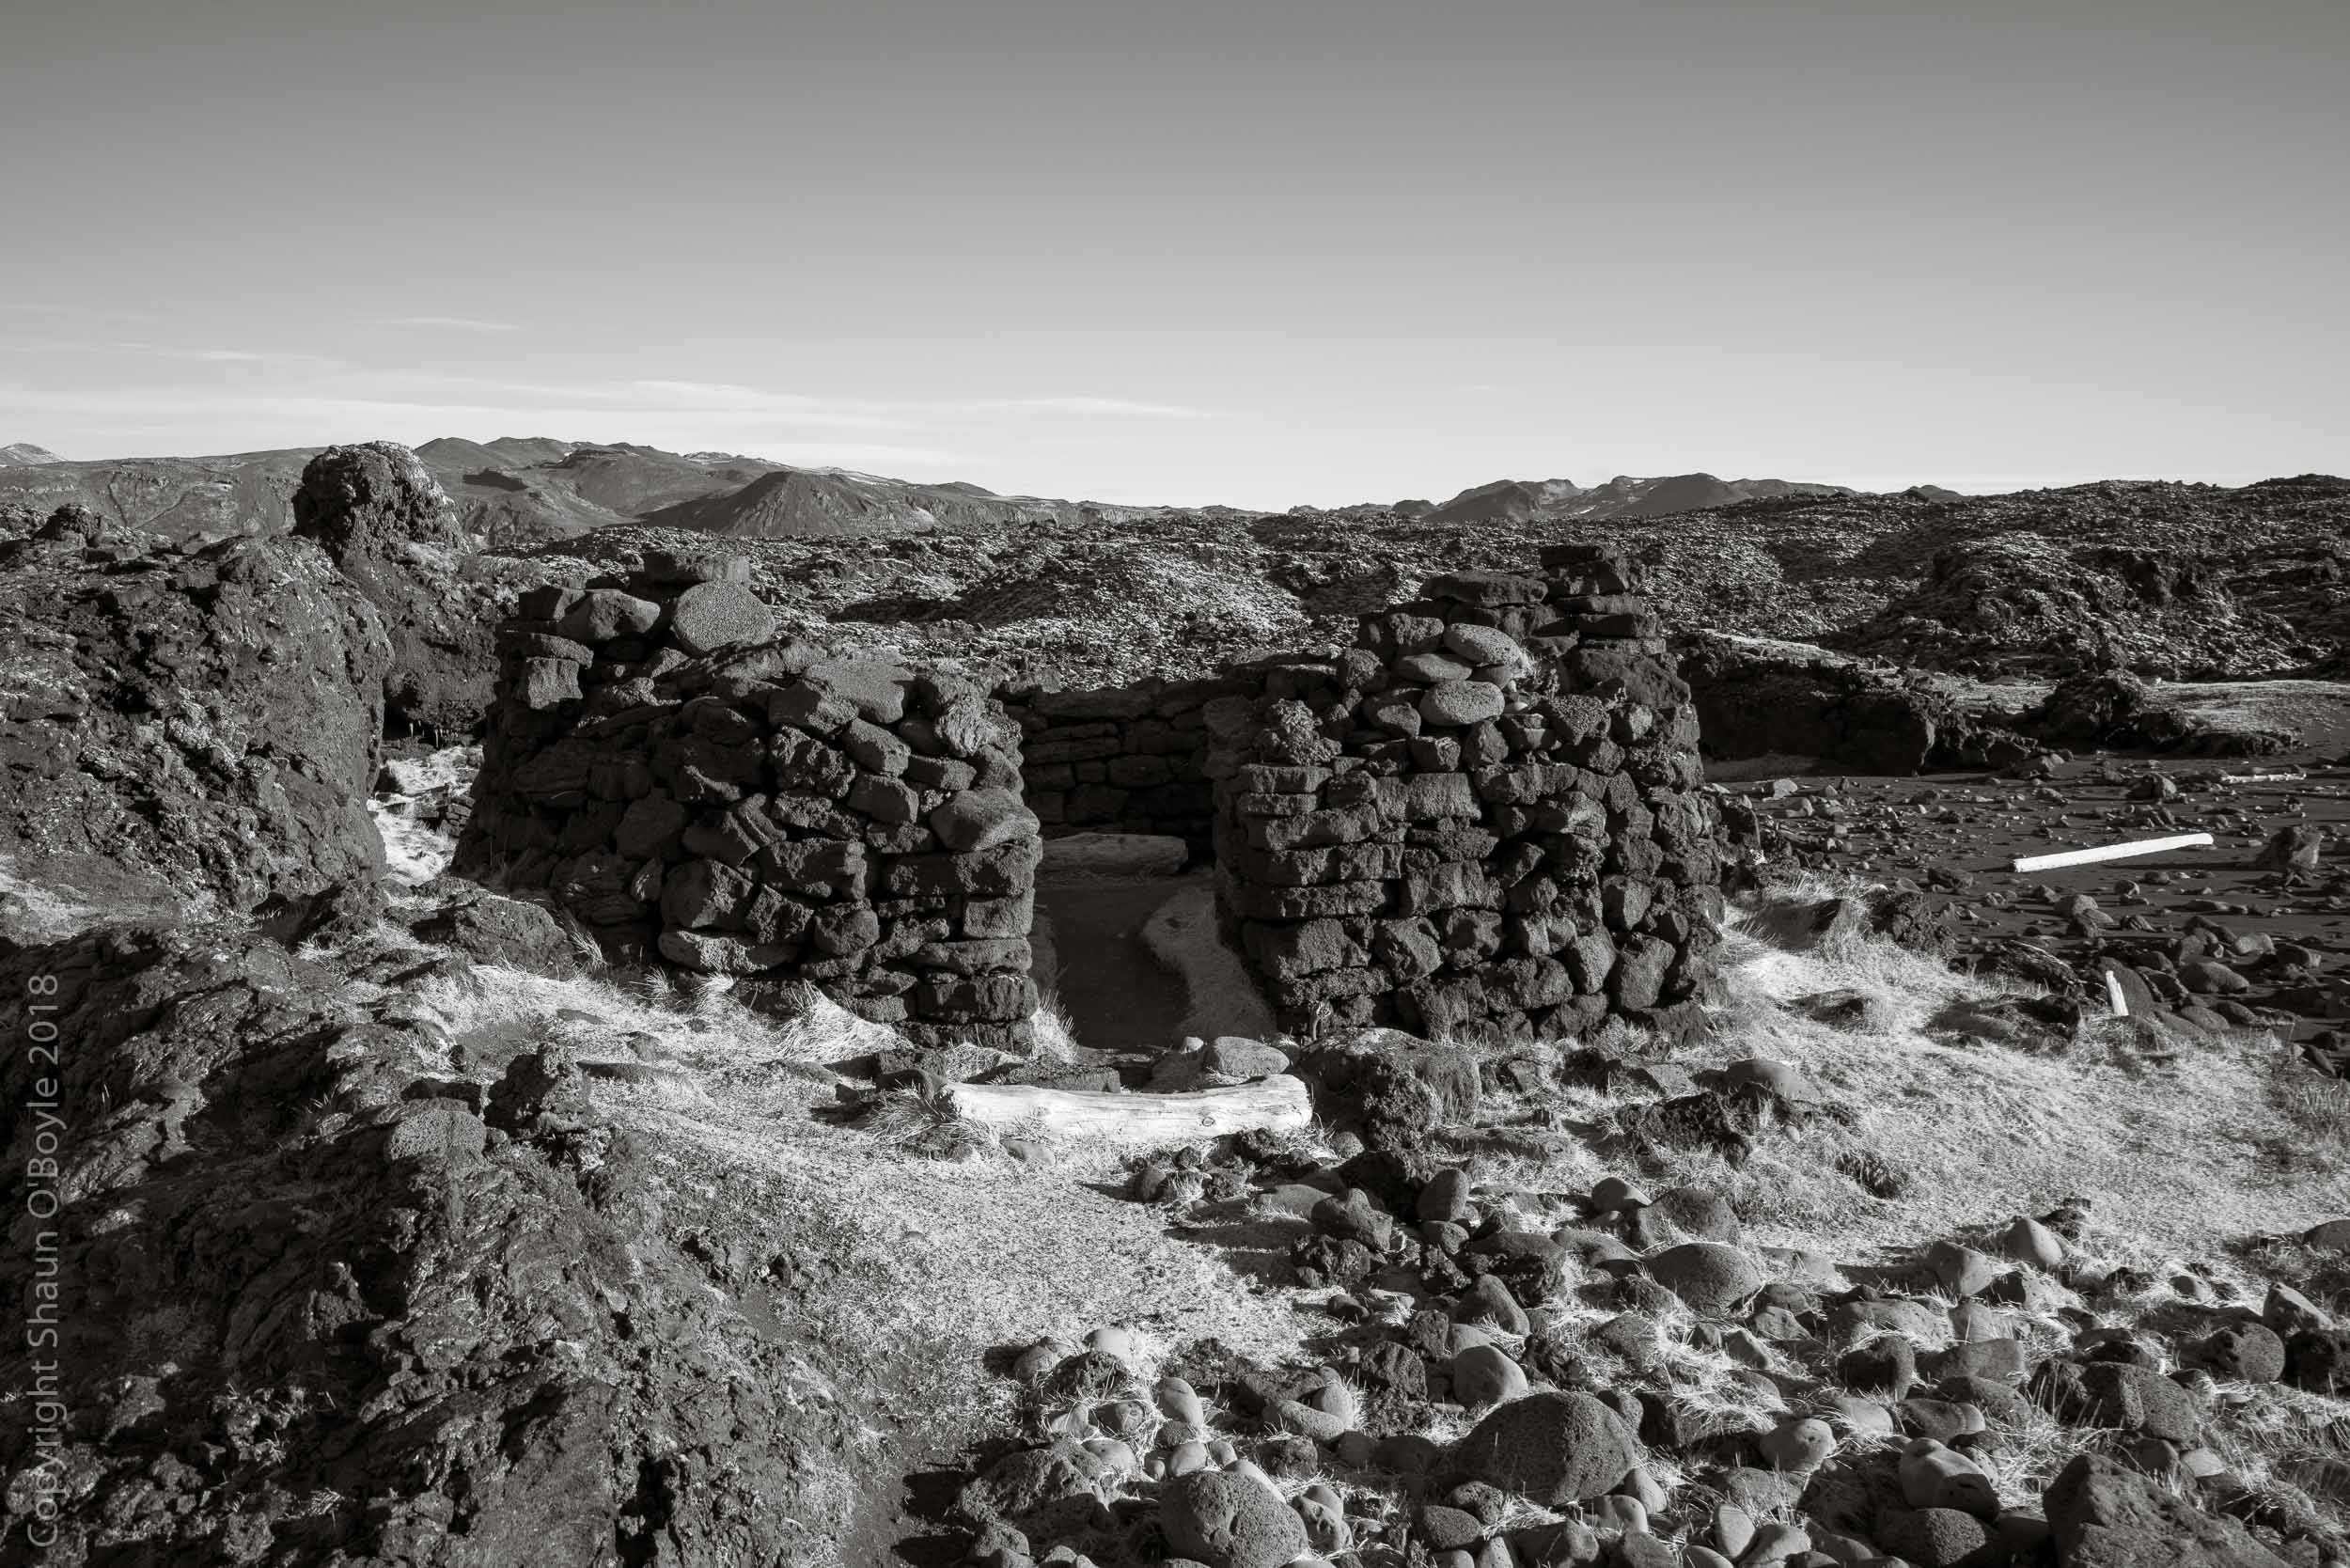 Fish hut in an old lava field at Selatangar, Iceland, a coastal fishing station used since the Middle Ages and said to be haunted by a ghost named Tanga-Tomas.